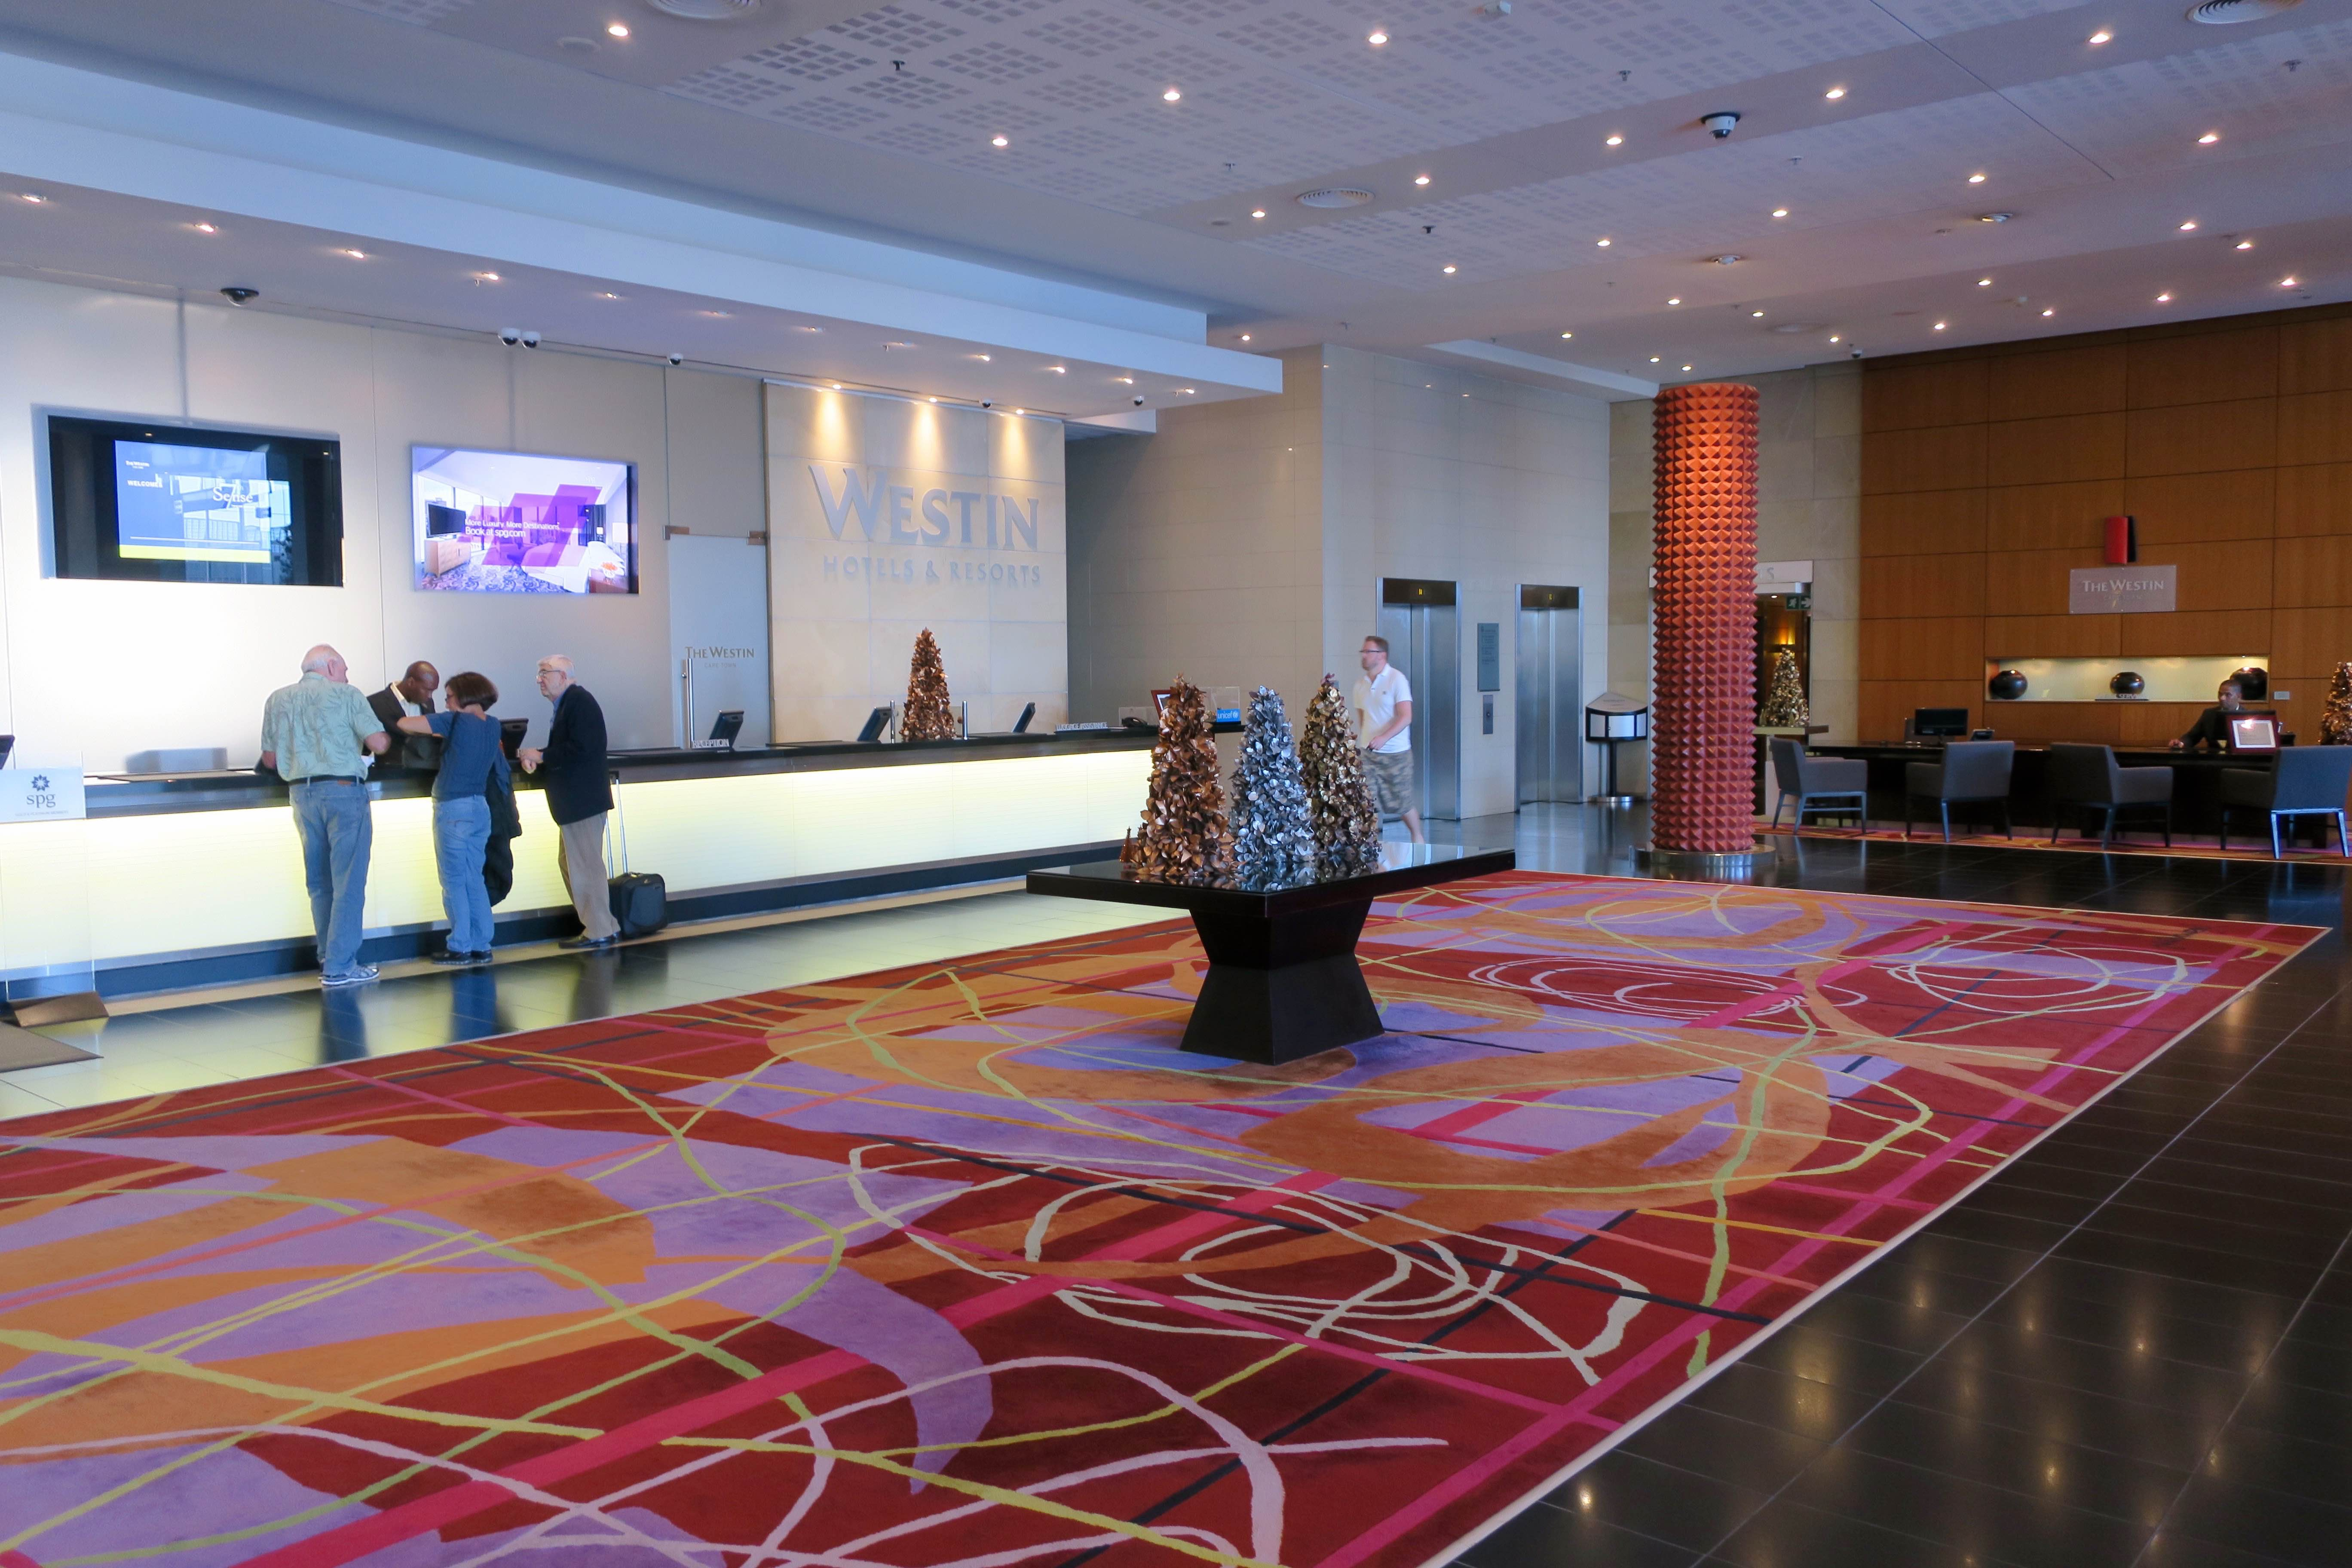 The Westine Cape Town review   Point Hacks